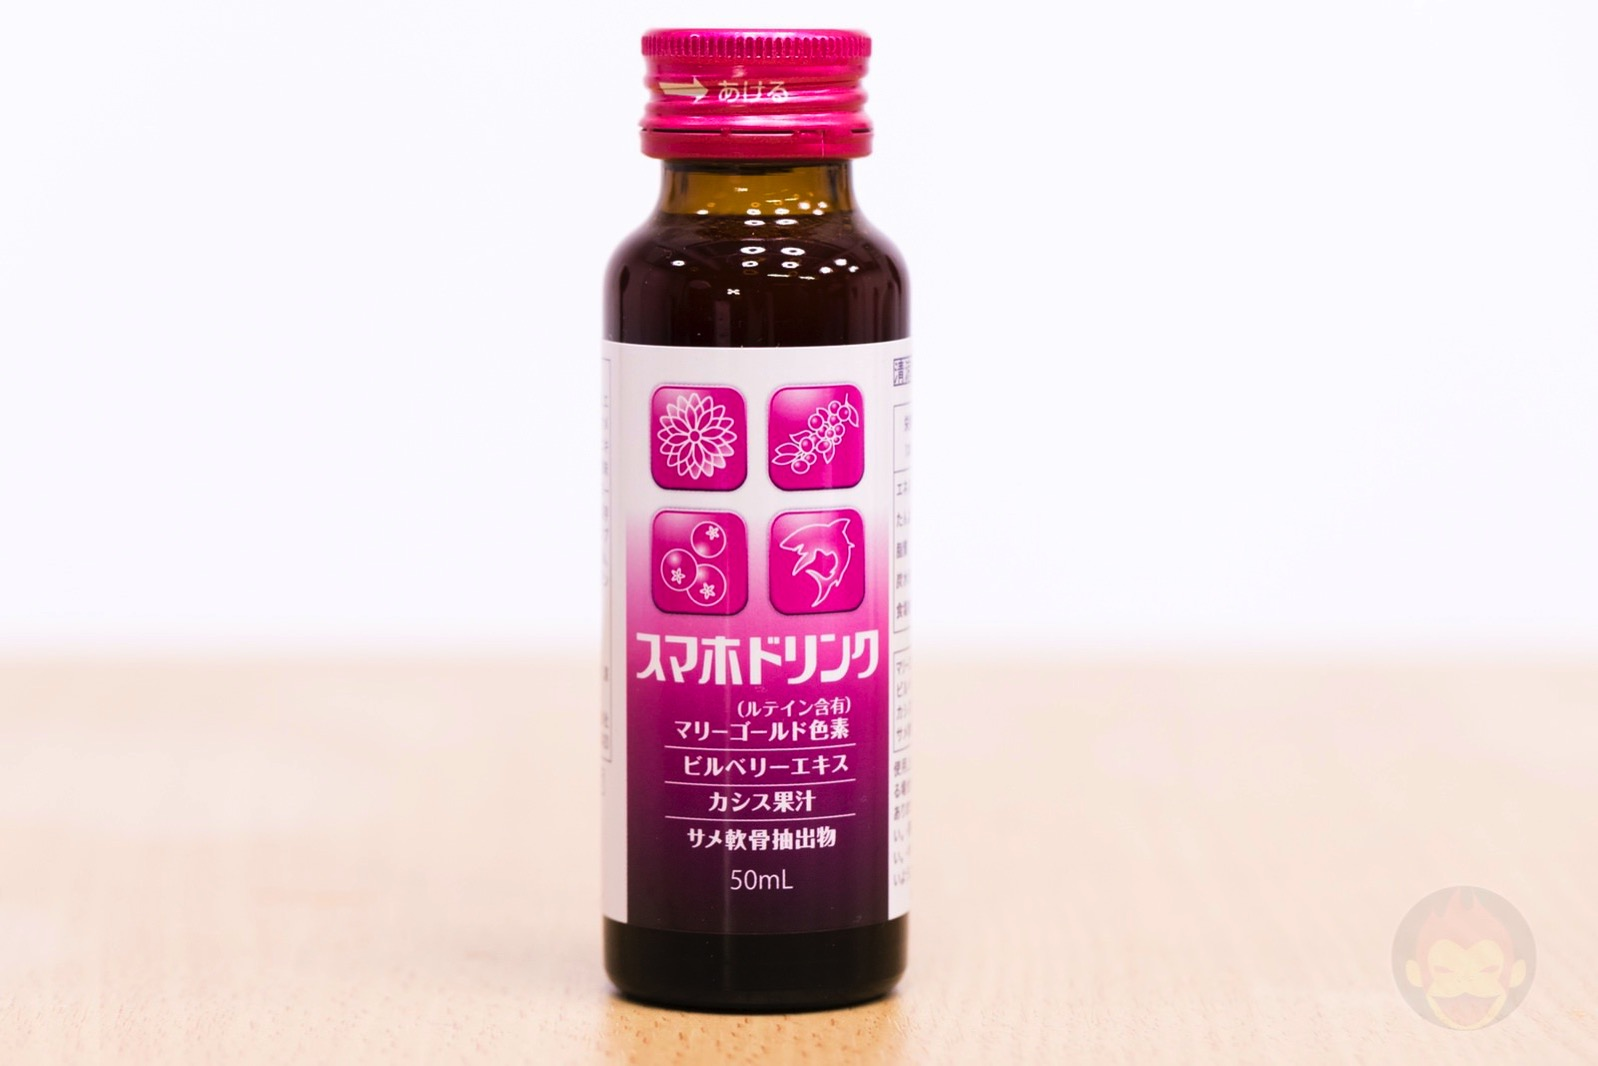 sumaho-drink-02.jpg